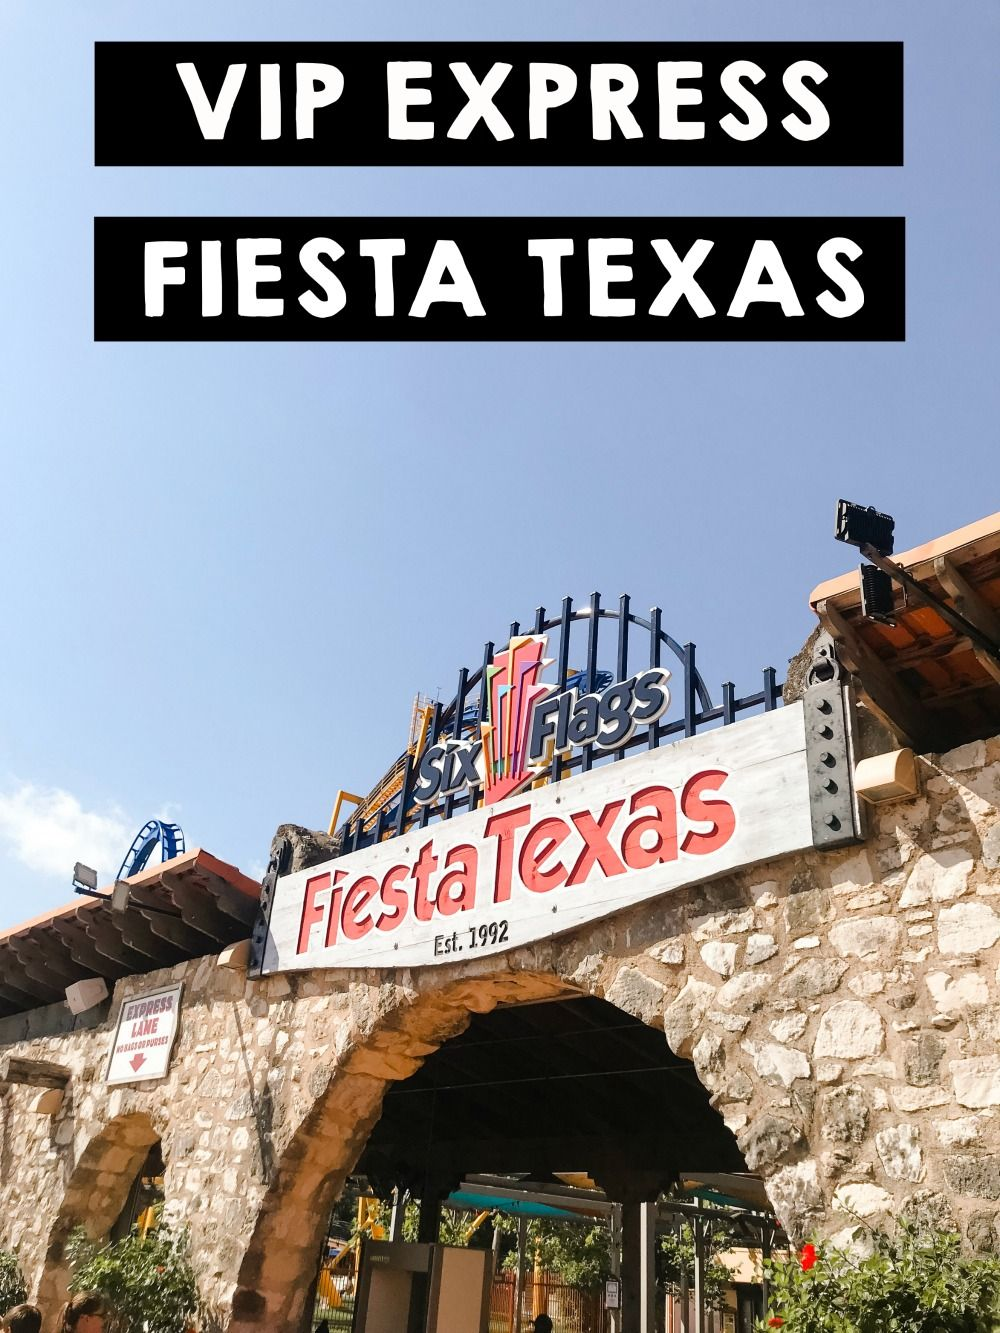 Vip Express At Six Flags Fiesta Texas Water Park Rides Packing Tips For Travel Six Flags Fiesta Texas